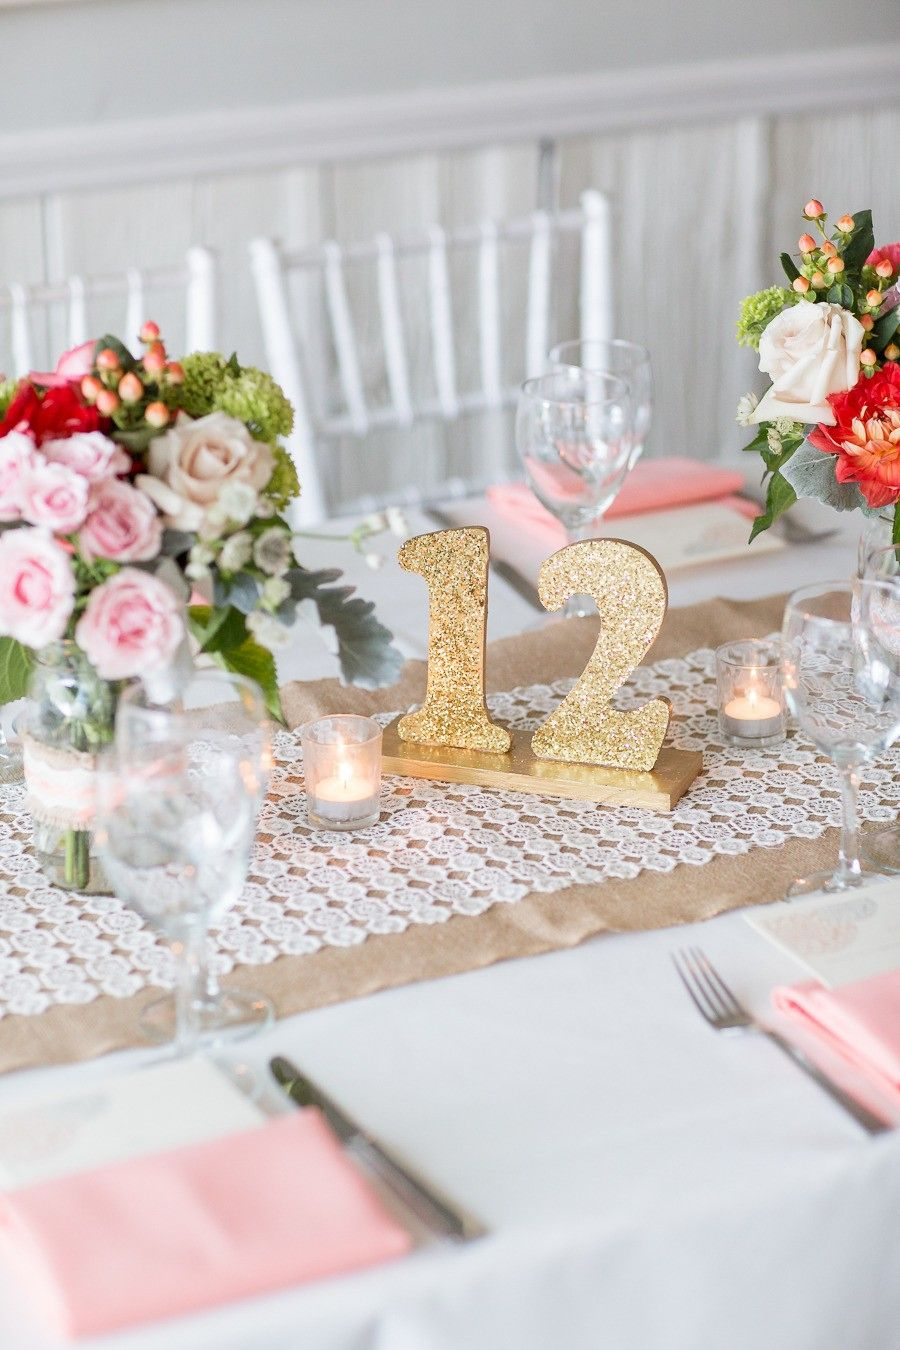 Wedding decorations house  Coral Inspiration Rustic New York Wedding at Crabtree Kittle House